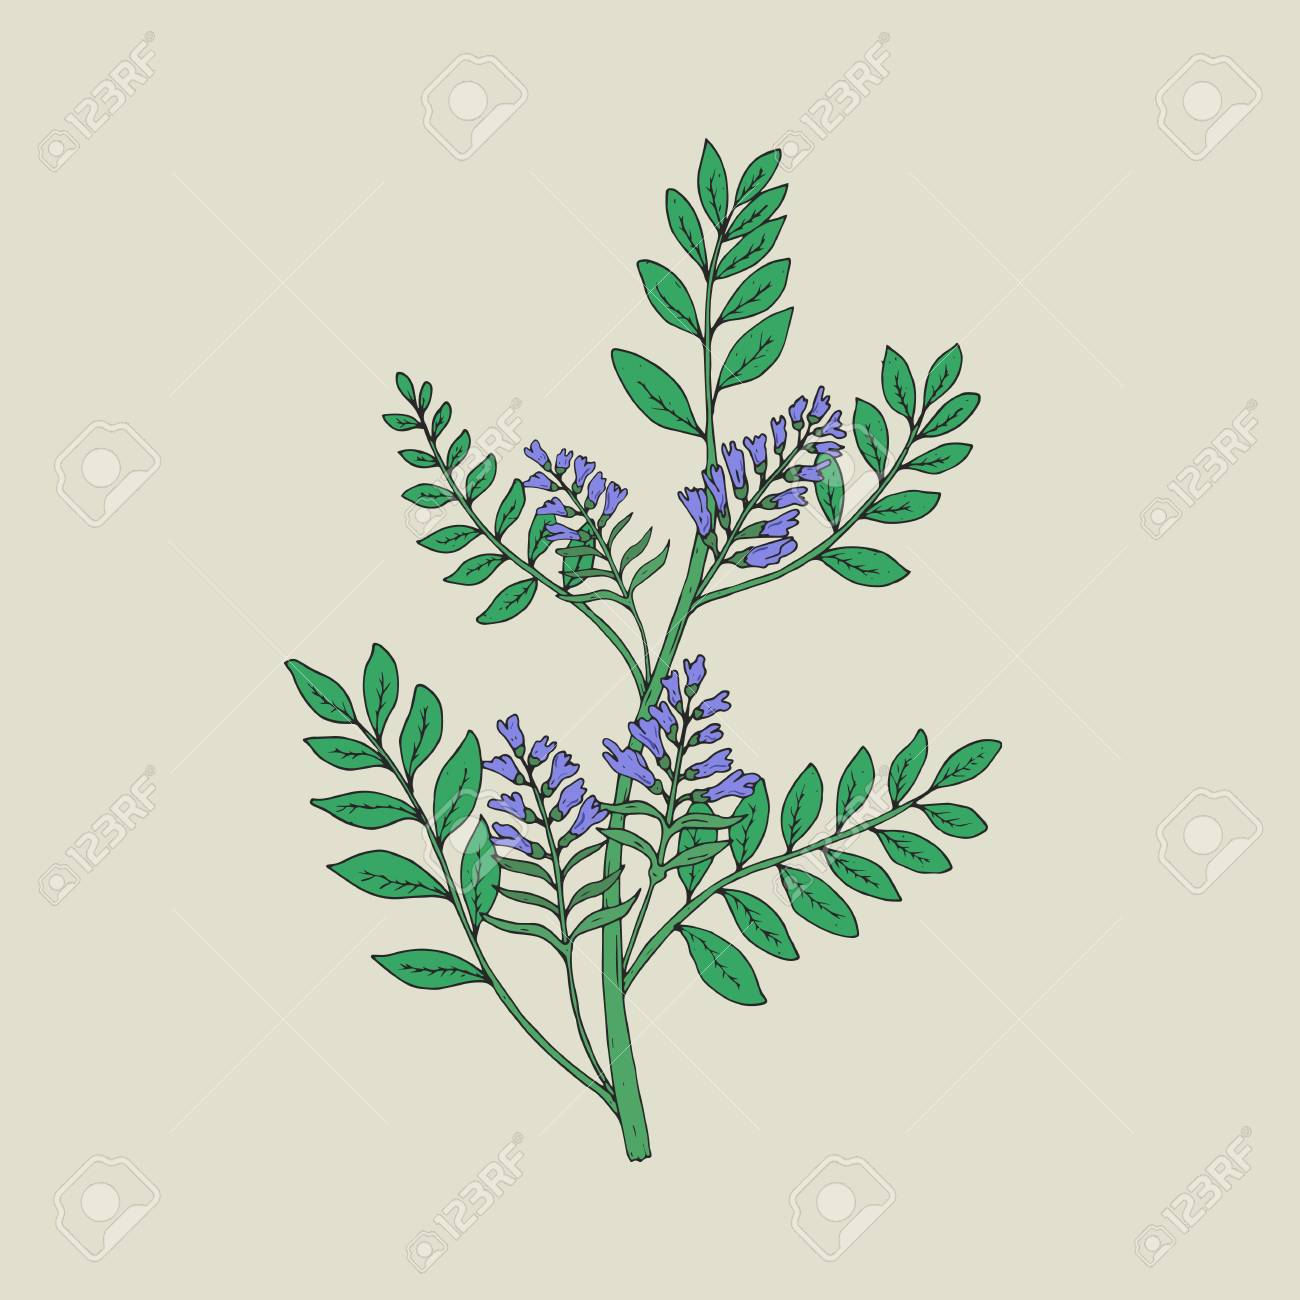 Pretty botanical drawing of blooming licorice plant with pretty botanical drawing of blooming licorice plant with inflorescences and leaves beautiful flowers hand drawn mightylinksfo